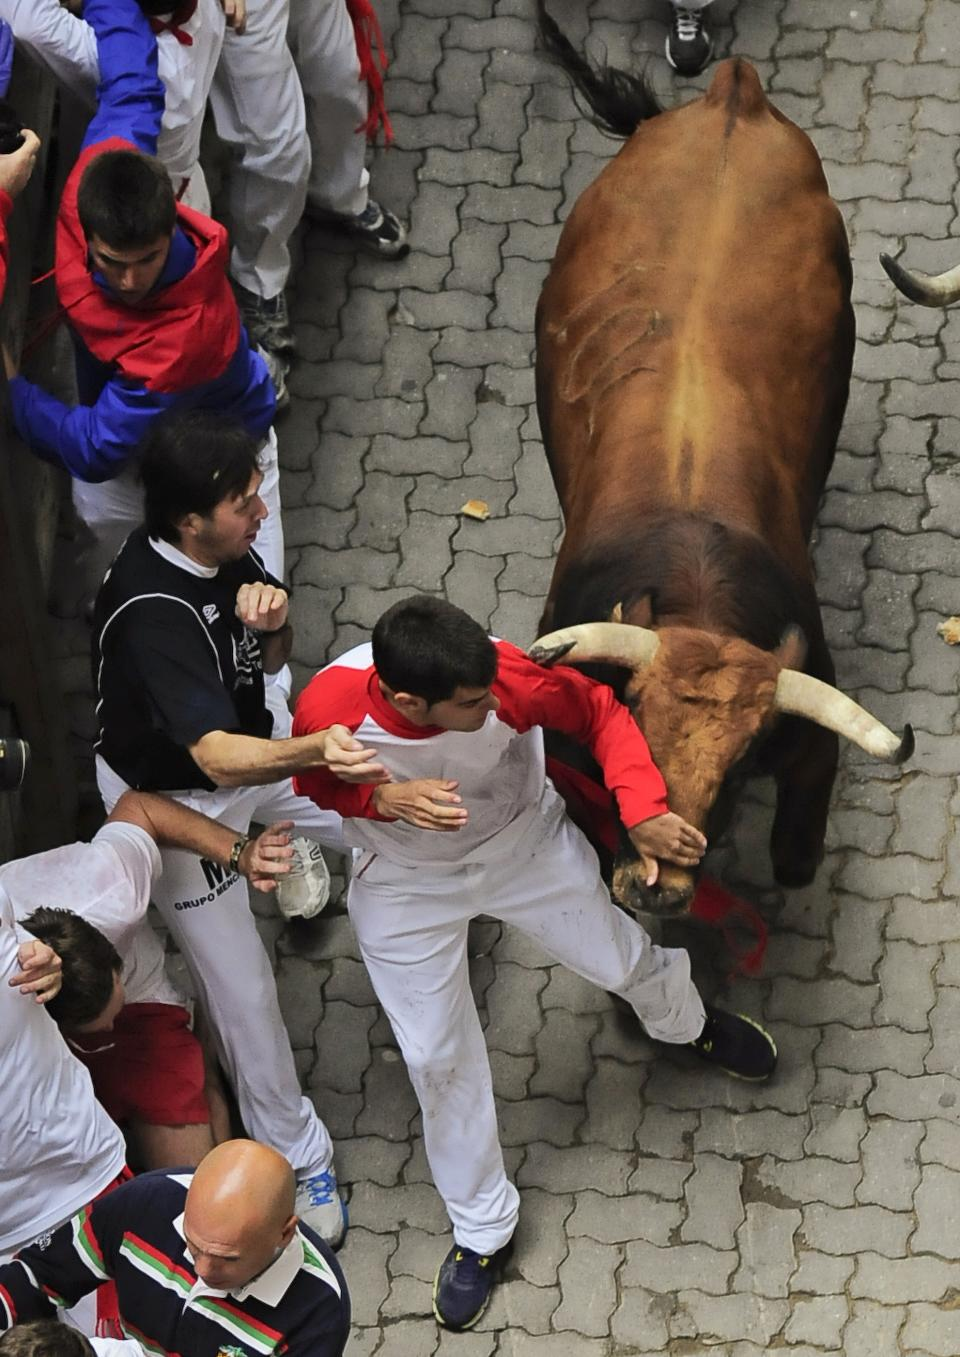 Reveler runs on the Callejon way beside a Cebada Gago ranch fighting bull, during the third running of the bulls at the San Fermin fiestas, in Pamplona northern Spain, Monday, July 9, 2012. (AP Photo/Alvaro Barrientos)